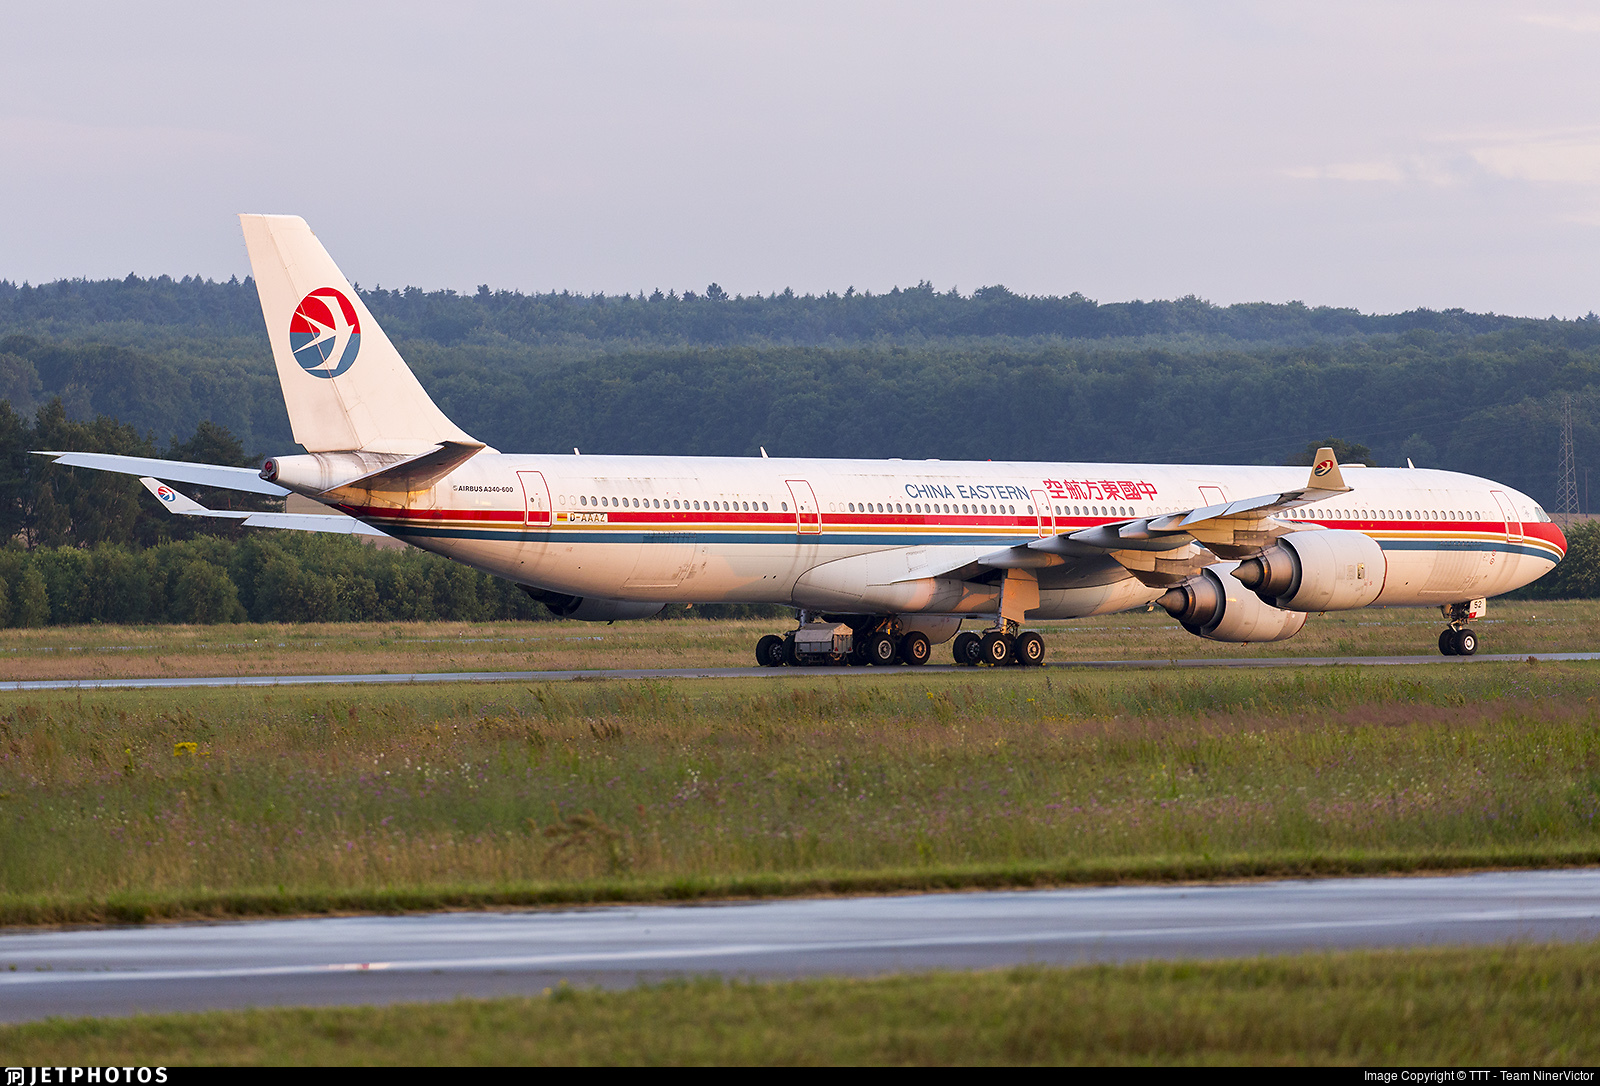 D-AAAZ - Airbus A340-642 - China Eastern Airlines